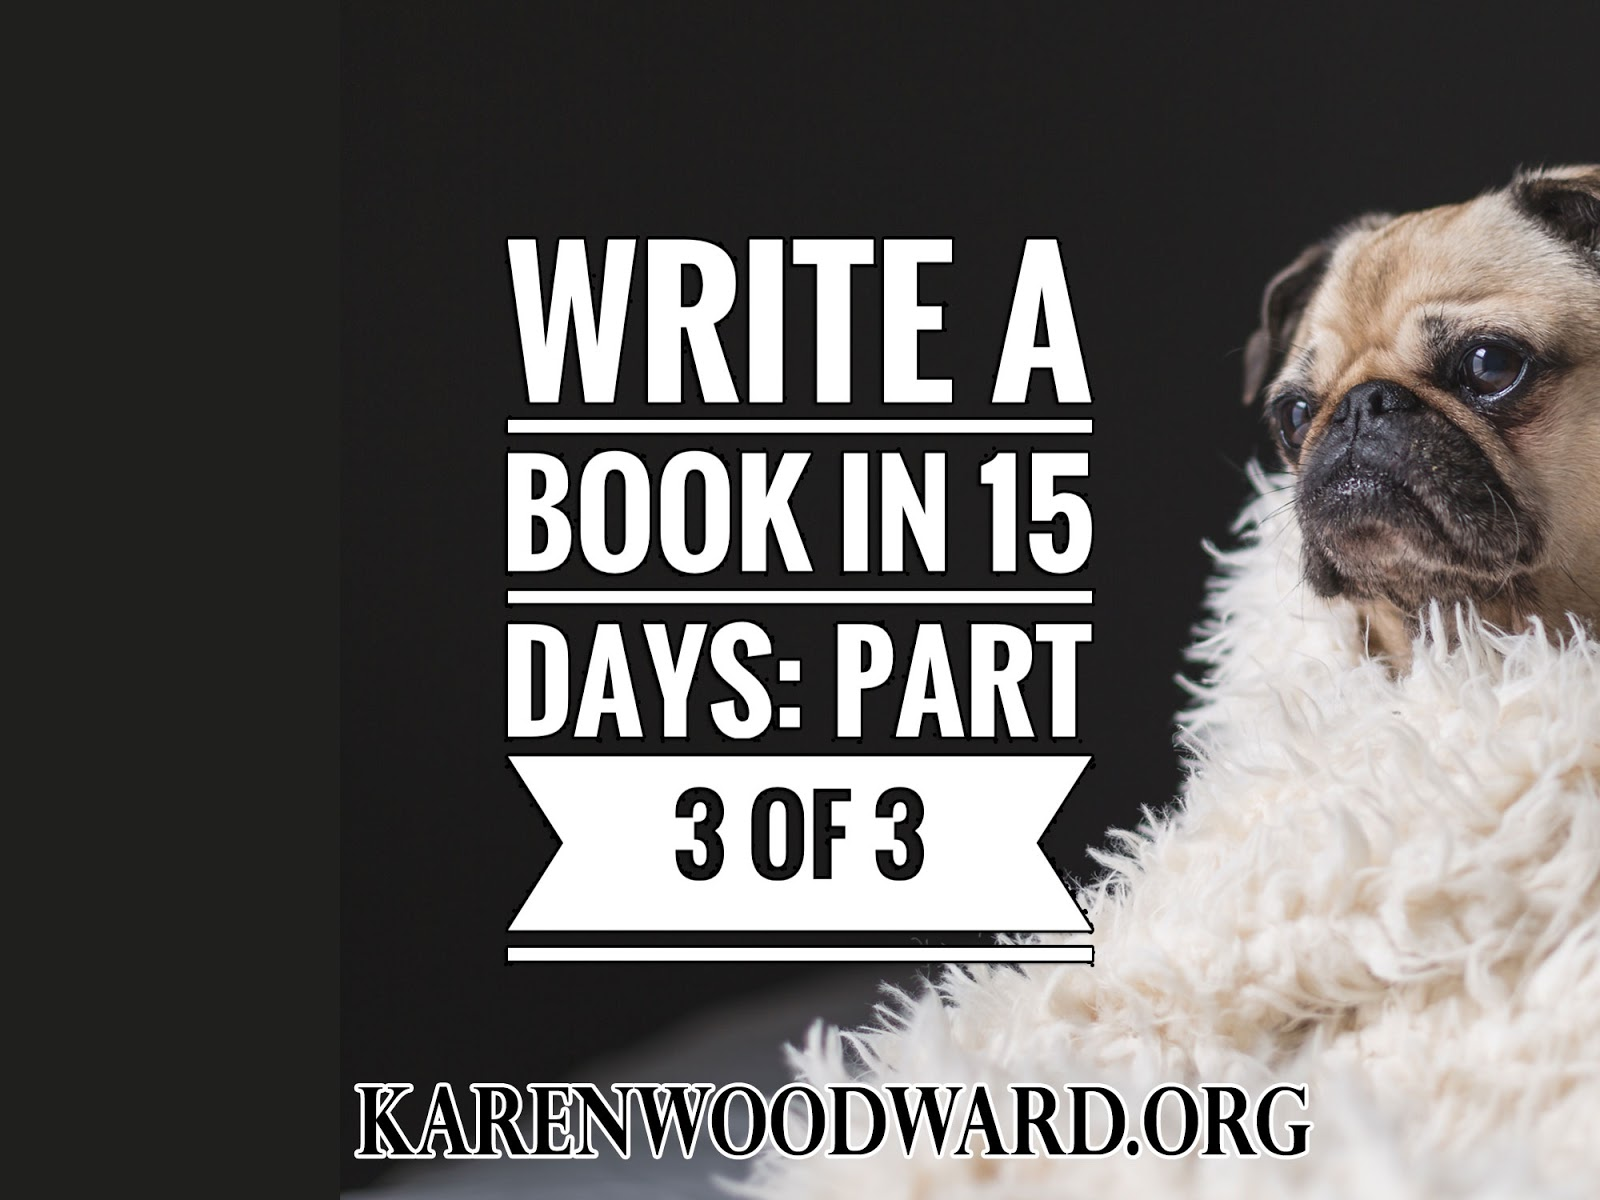 Karen woodward write a book in 15 days part 3 of 3 for How to write a craft book